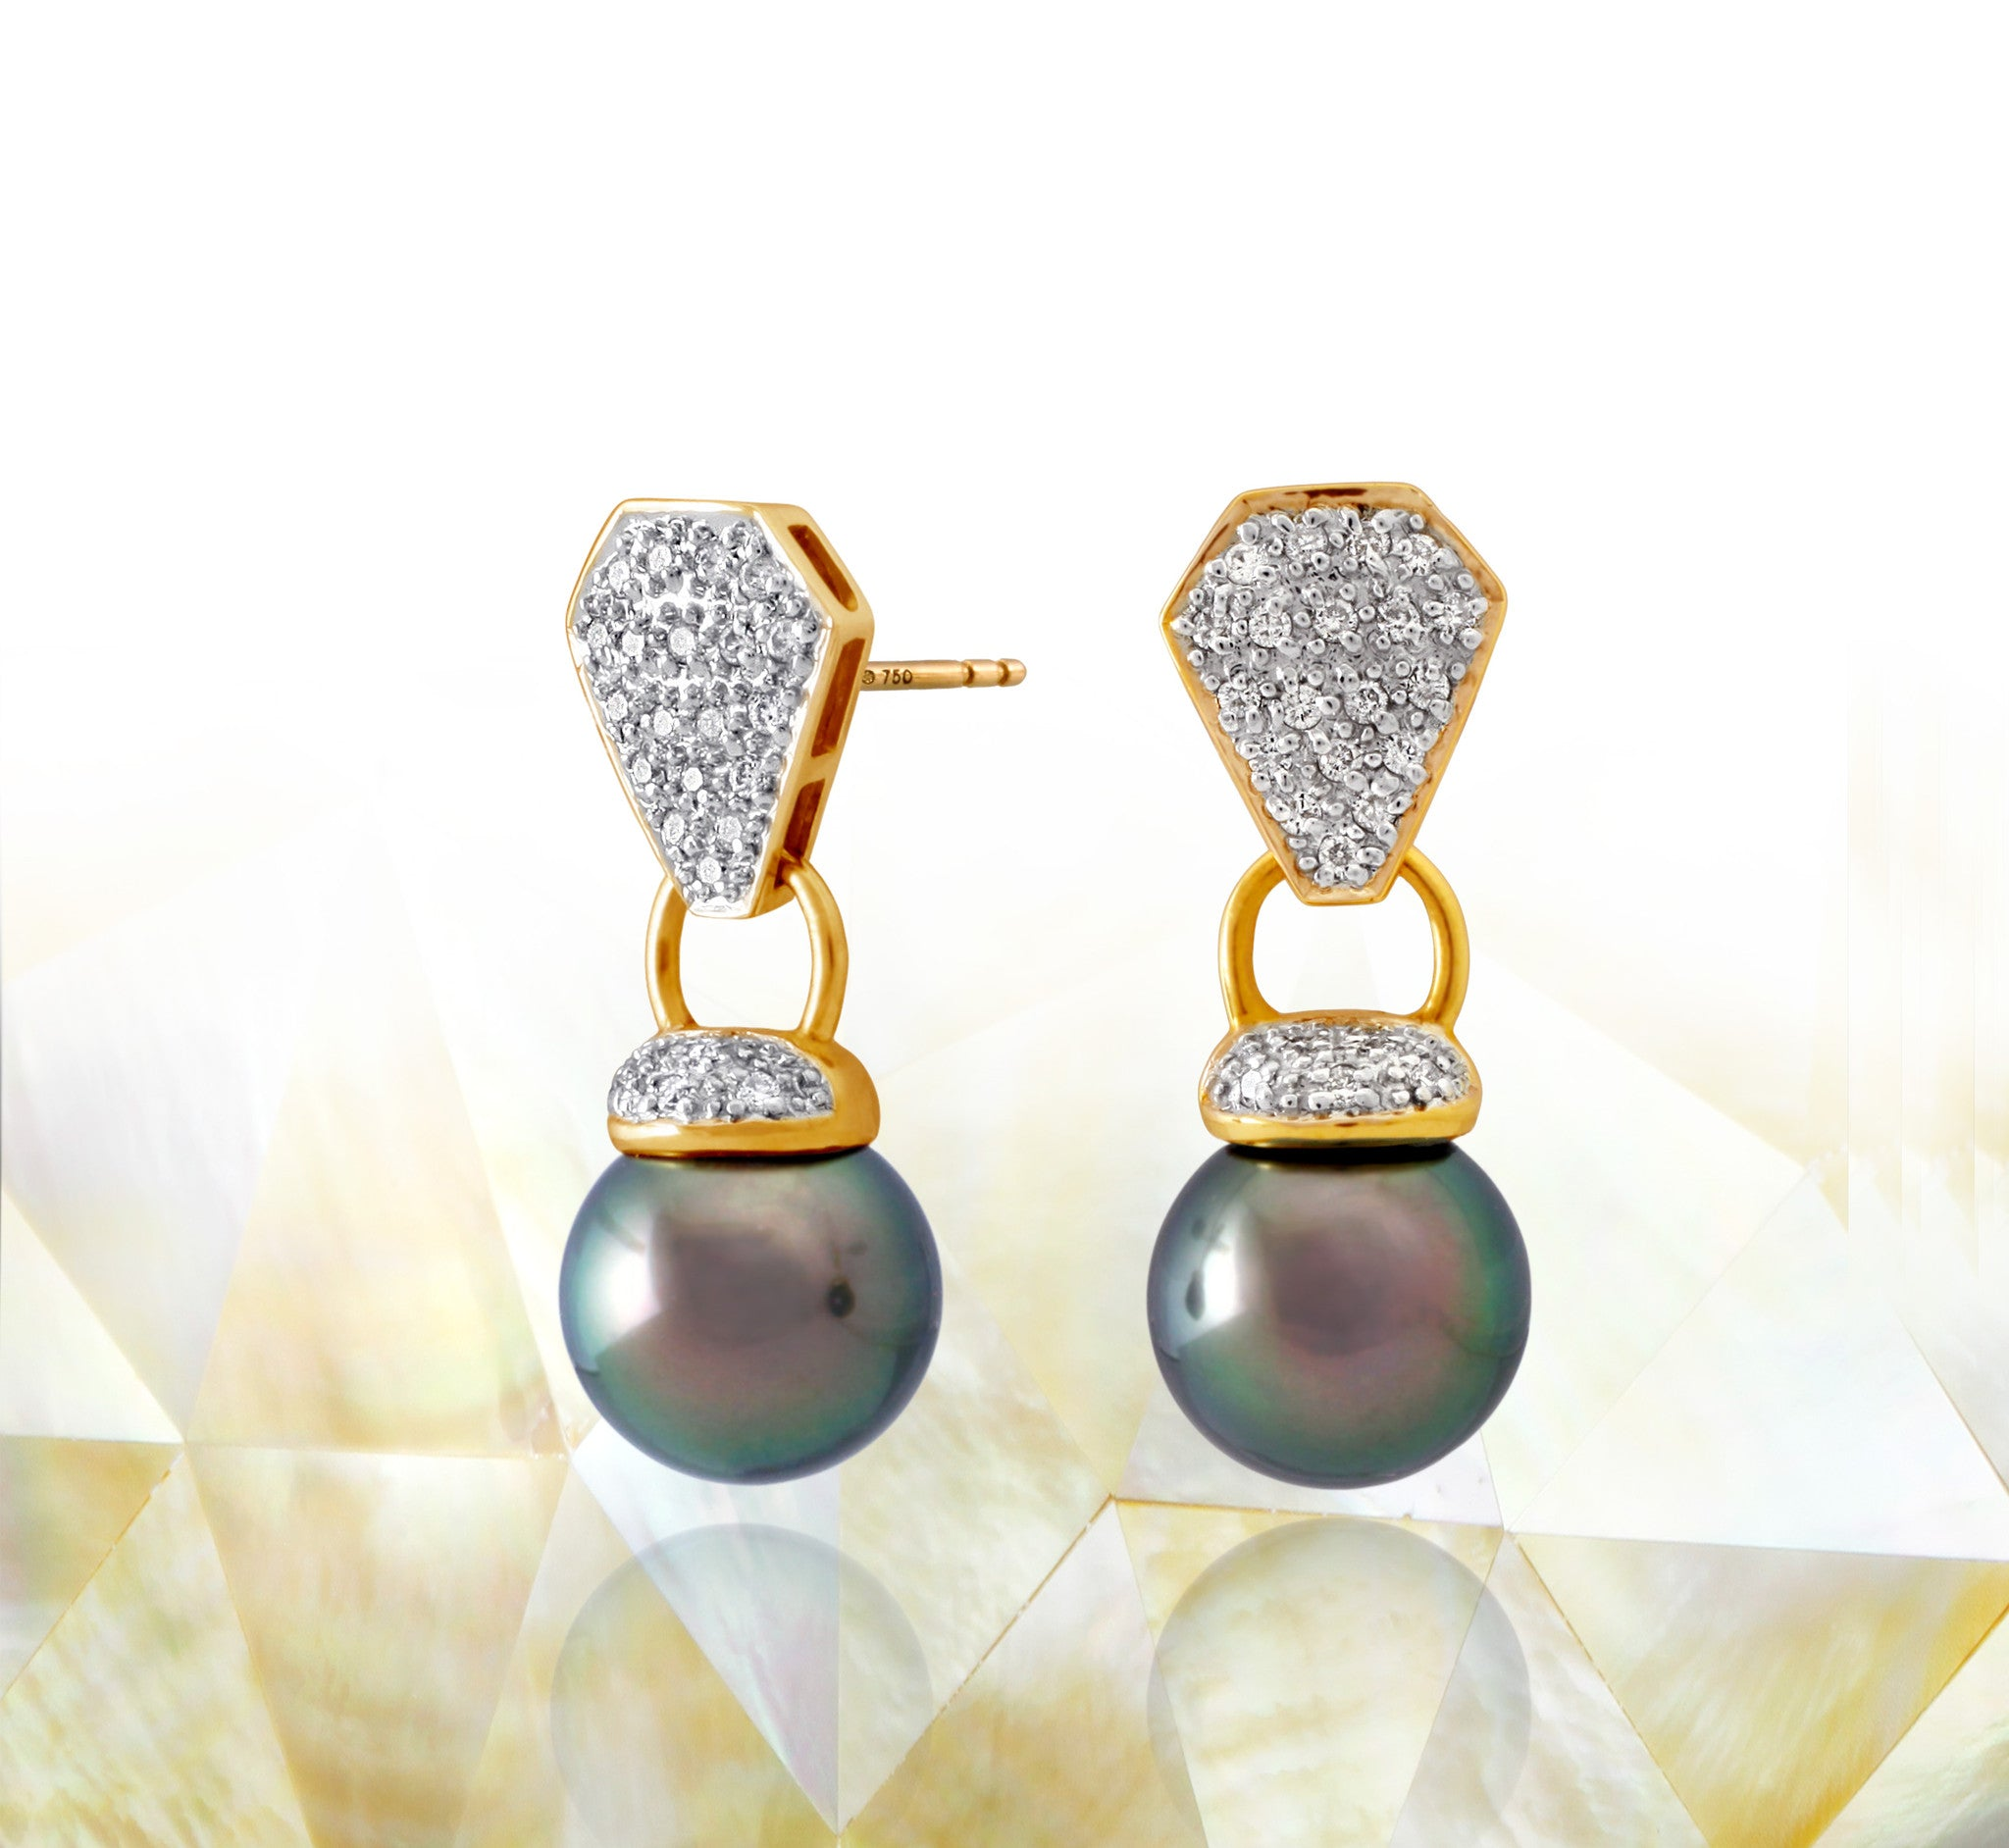 Tahitian pearl earrings 18k yellow gold with diamonds - Rainbow drops - EAYDPE00082